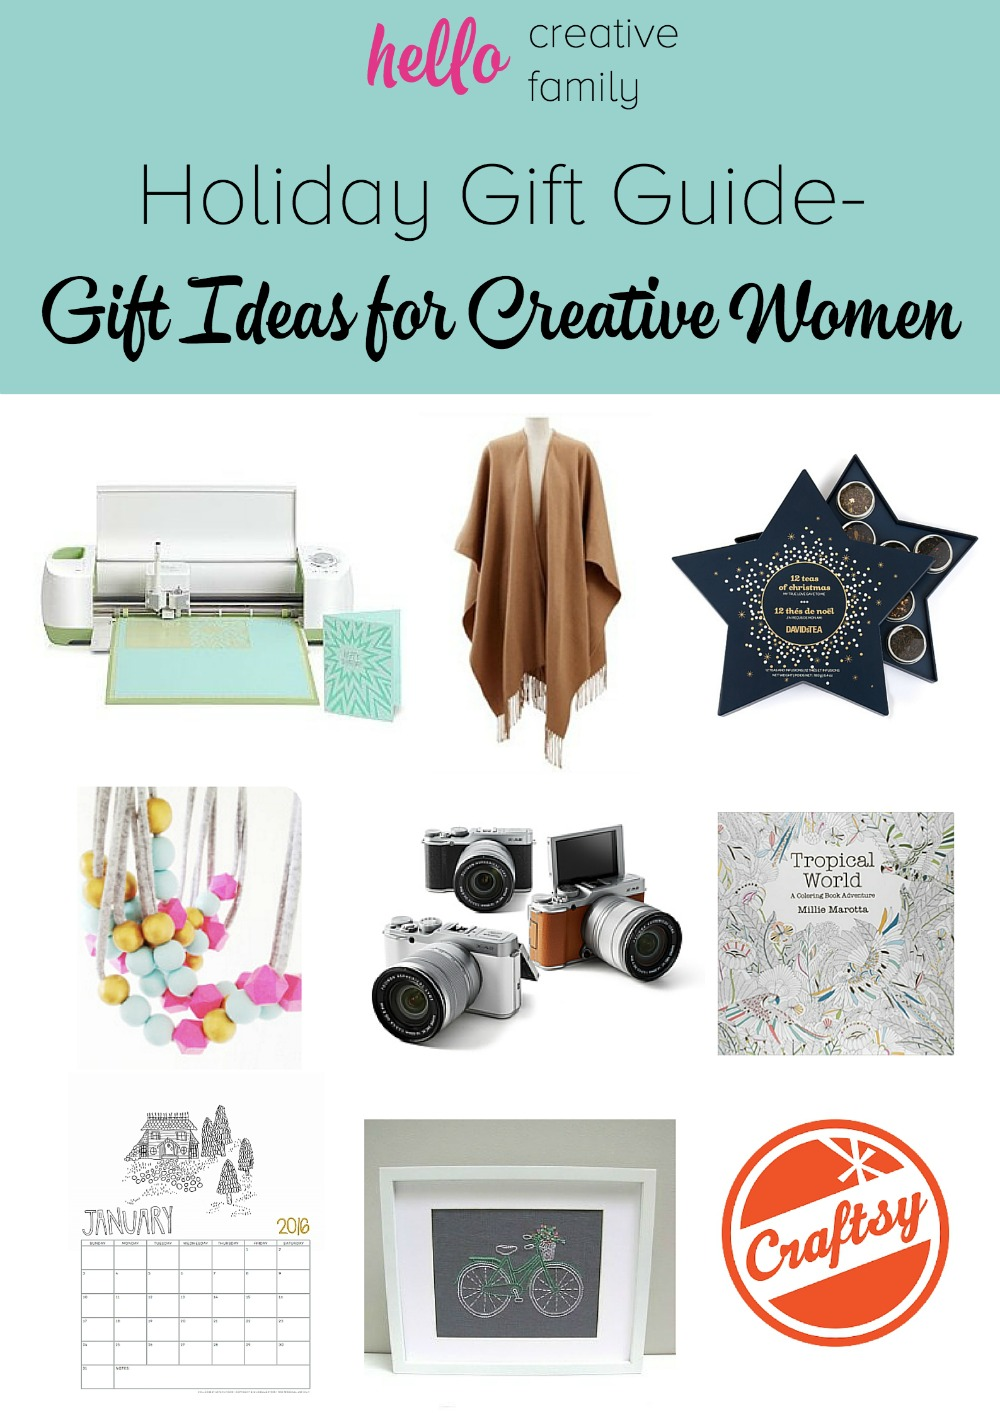 Looking for a gift ideas for the foodie in your life? Check out Hello Creative Family's Holiday Gift Guide for foodies for tons of great gift giving ideas.